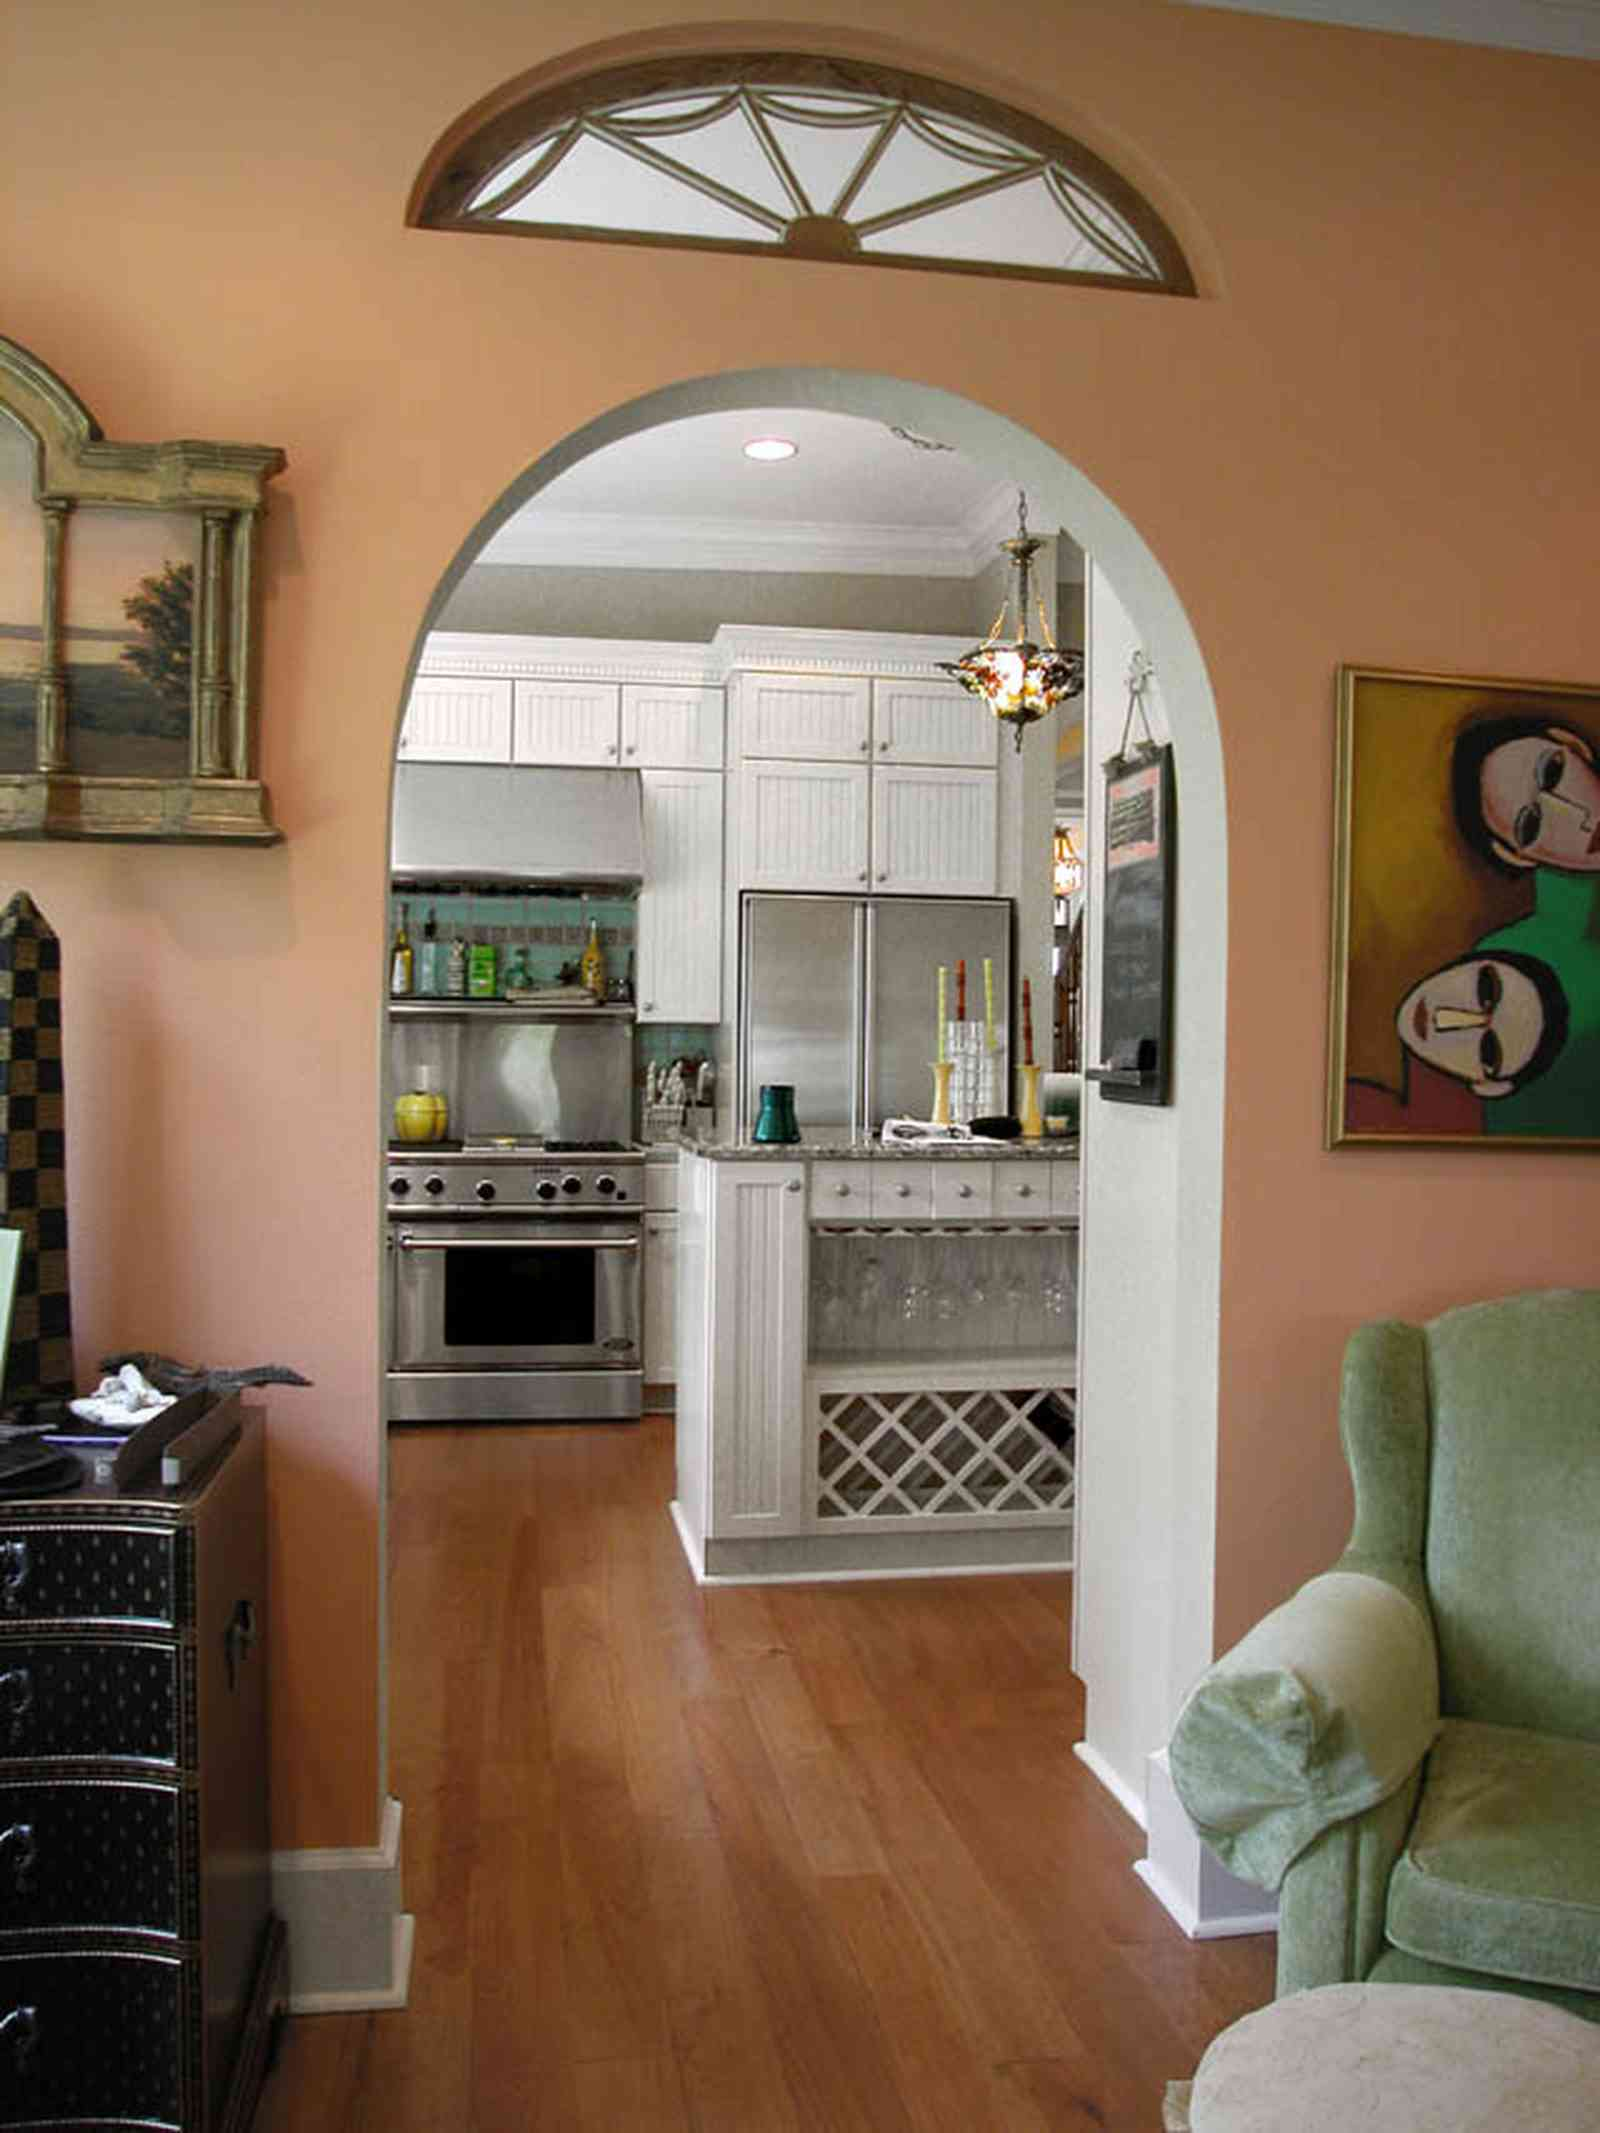 Pensacola:-Seville-Historic-District:-202-Cevallos-Street_19.jpg:  fanlight, heart pine floors, wine rack, kitchen cabinet, arched doorway, den, family room, stainless steel appliances